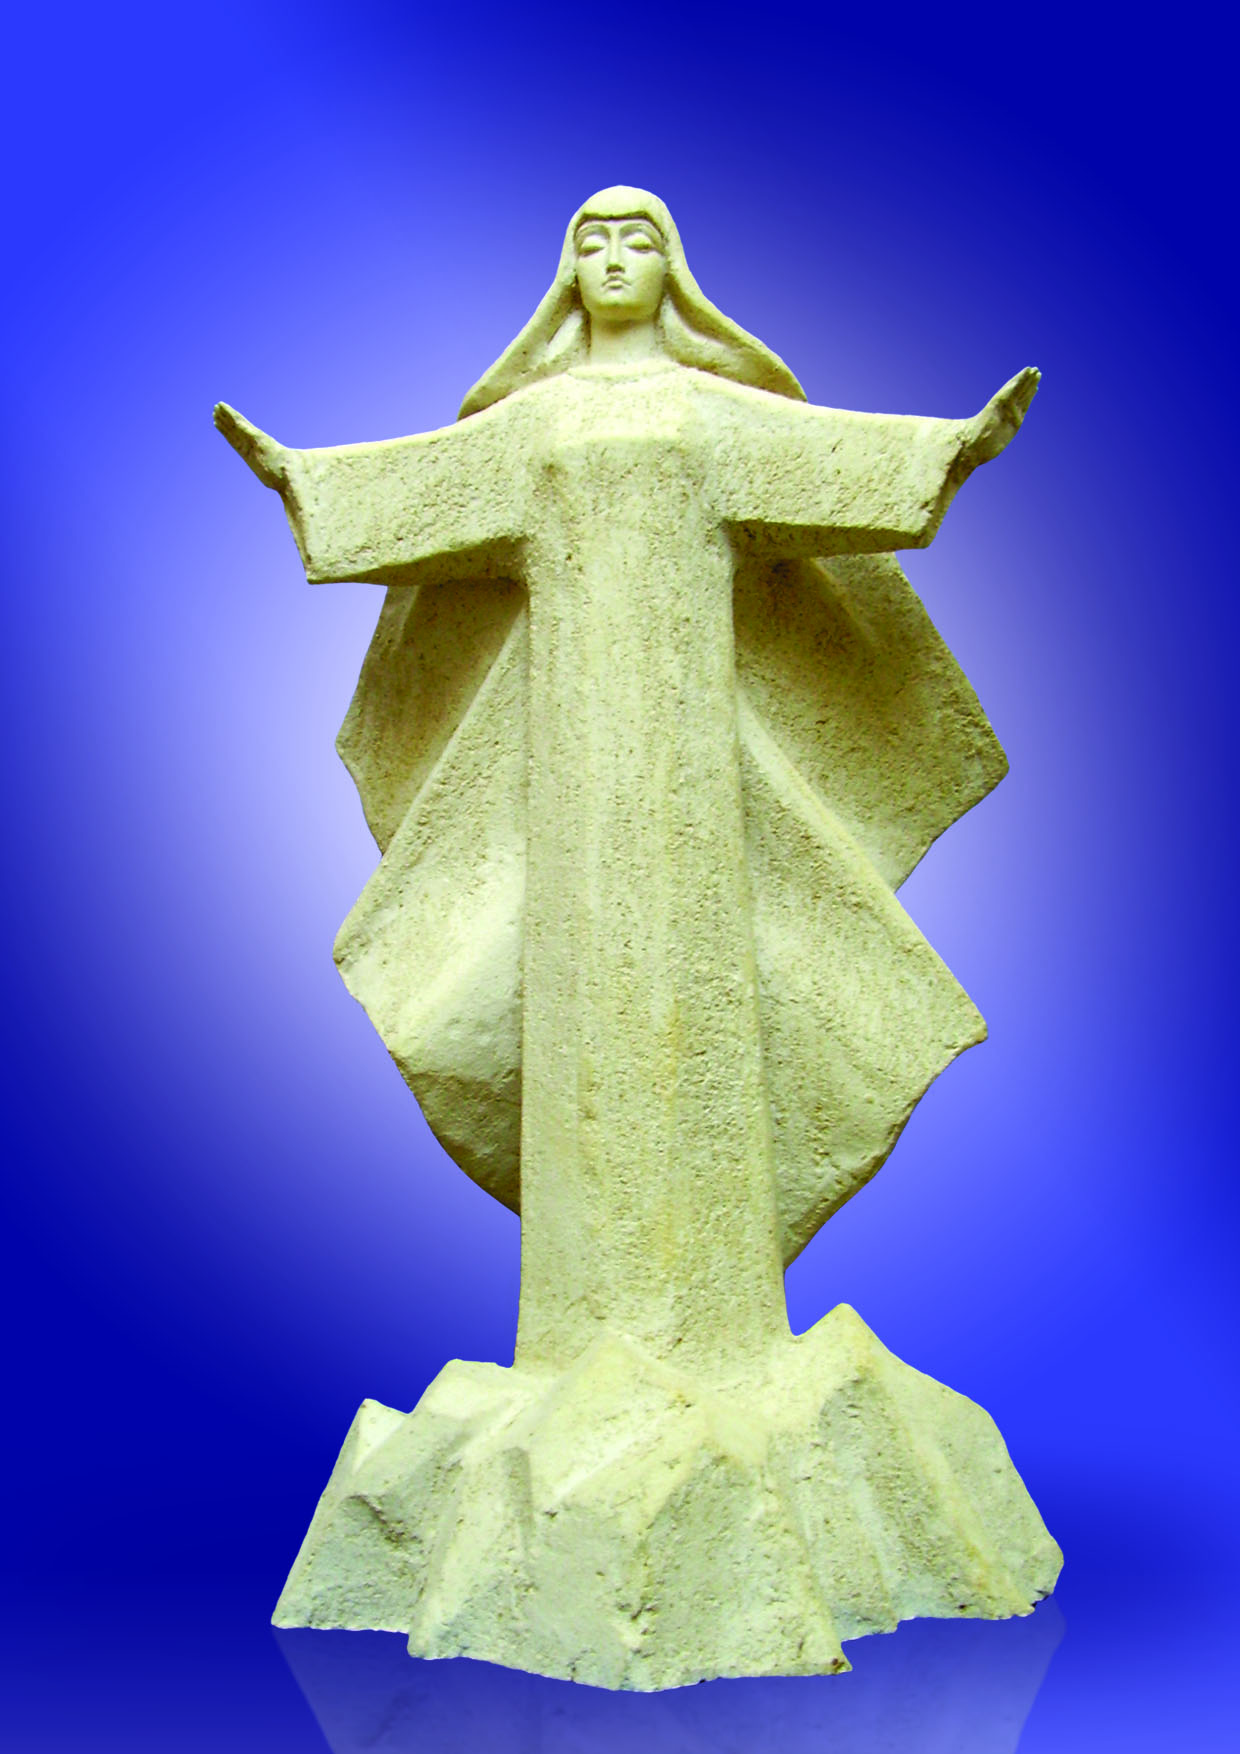 Mother of the World. 2007 - mater mira